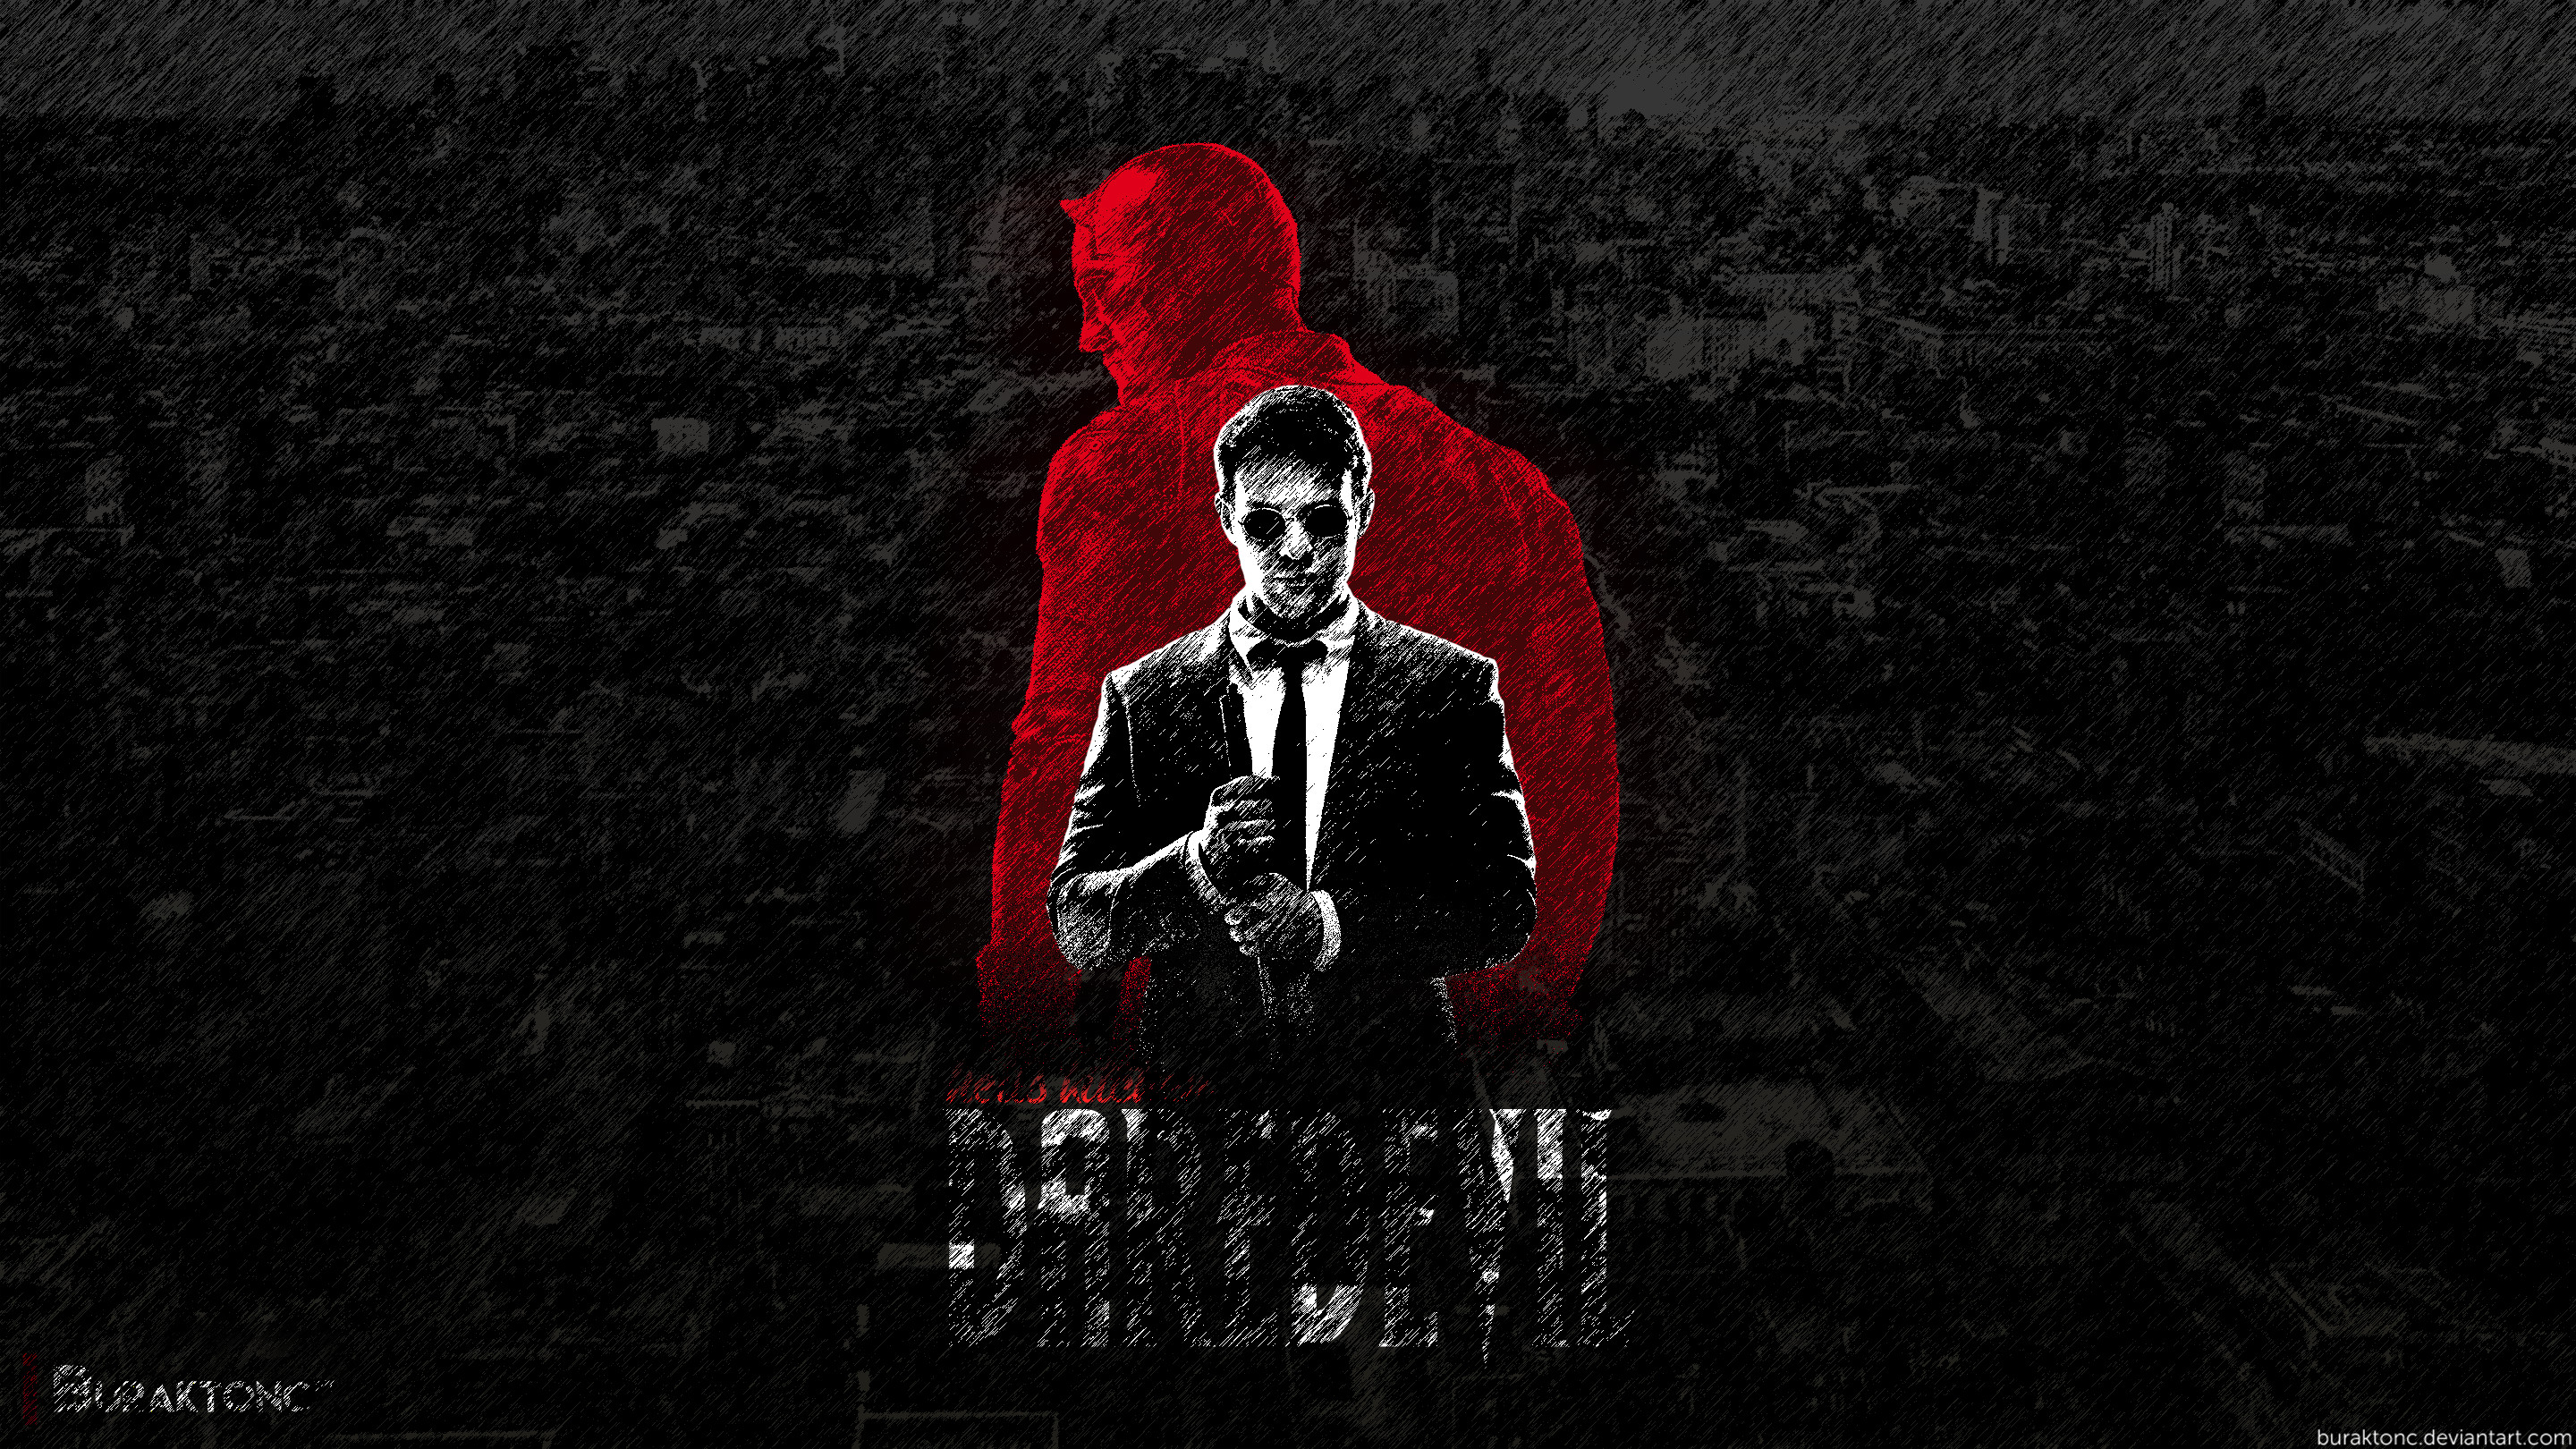 Res: 2880x1620, Daredevil Wallpaper by buraktonc Daredevil Wallpaper by buraktonc